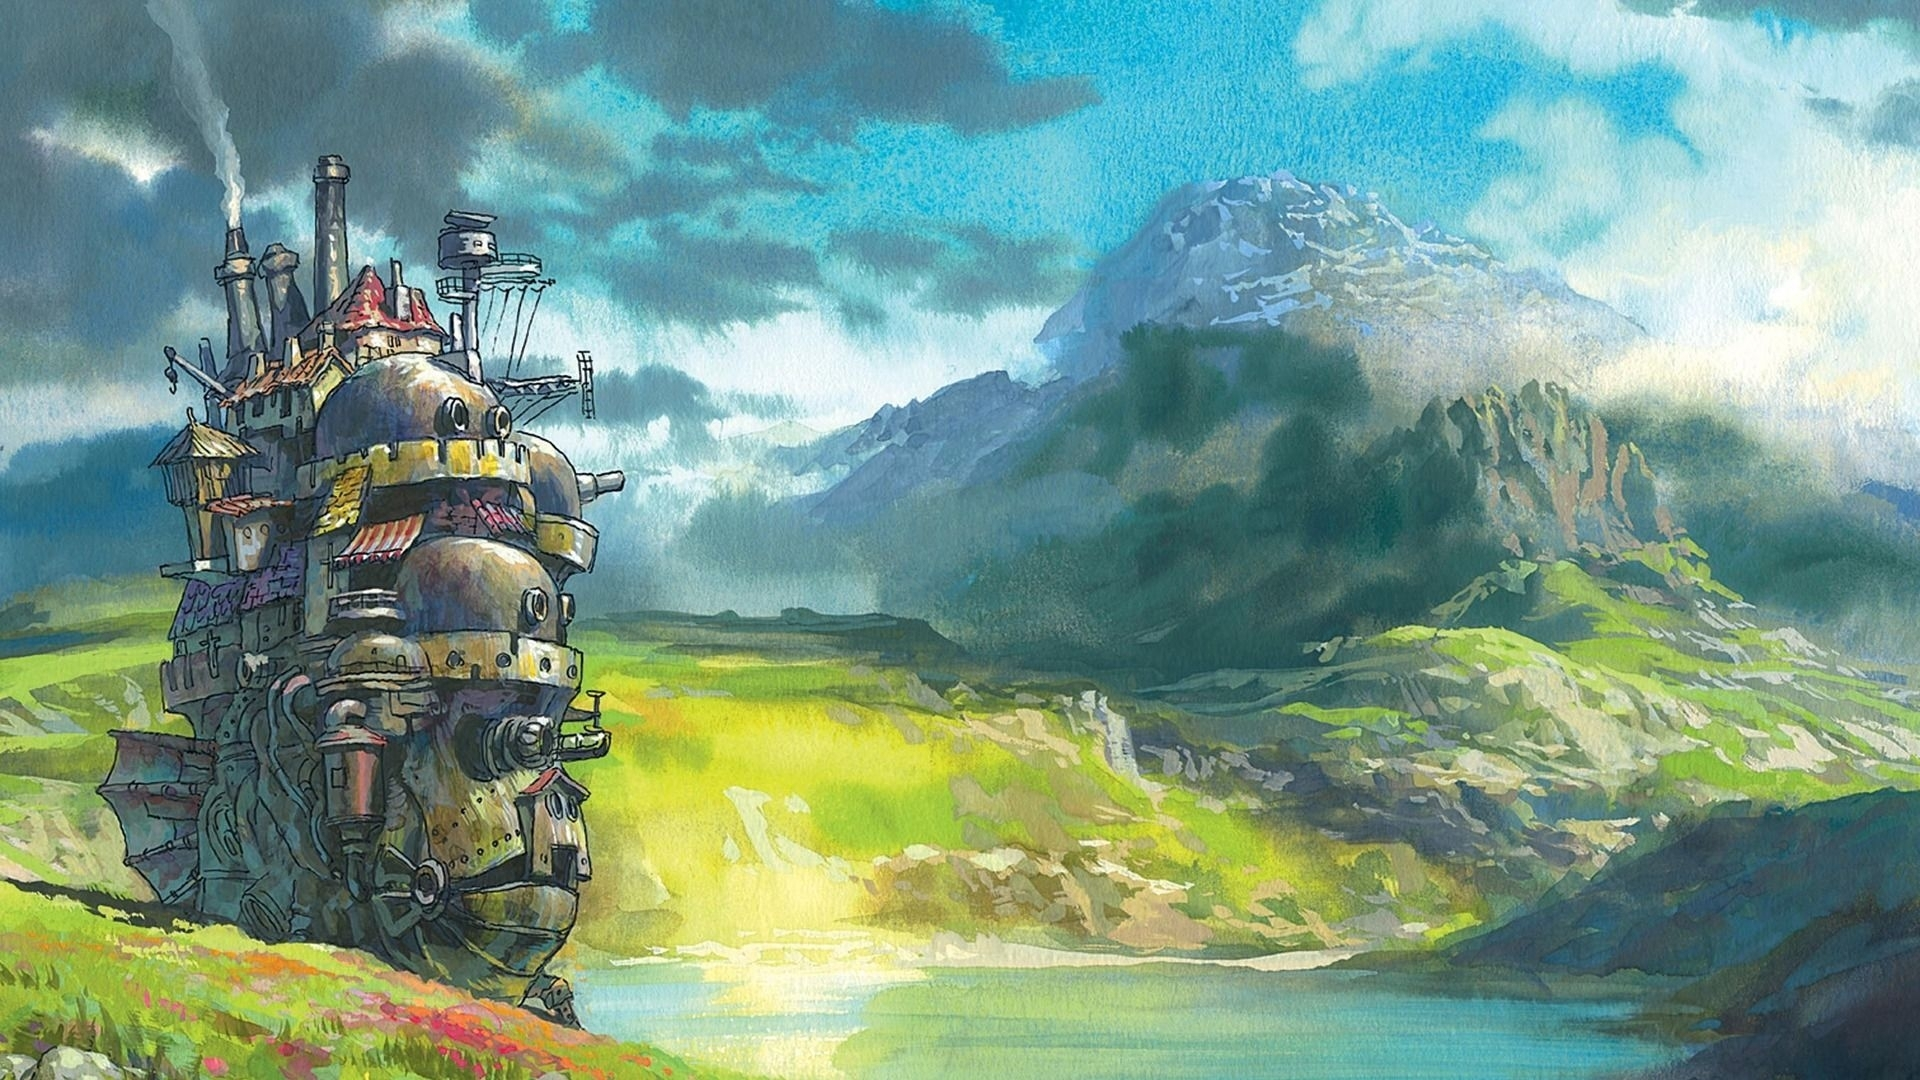 studio ghibli hd wallpaper | 1920x1080 | id:46392 | disney